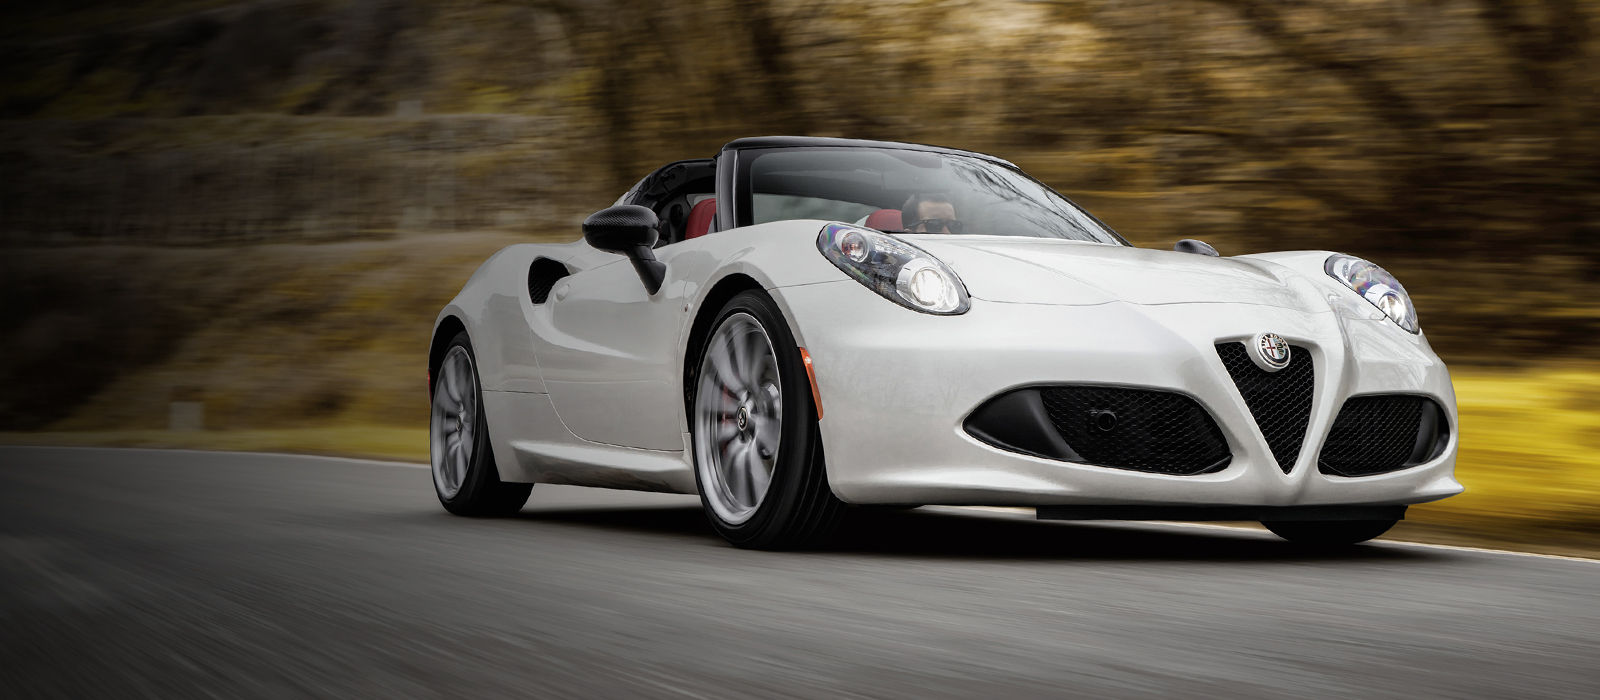 alfa romeo 4c spider lease deals finance prices. Black Bedroom Furniture Sets. Home Design Ideas